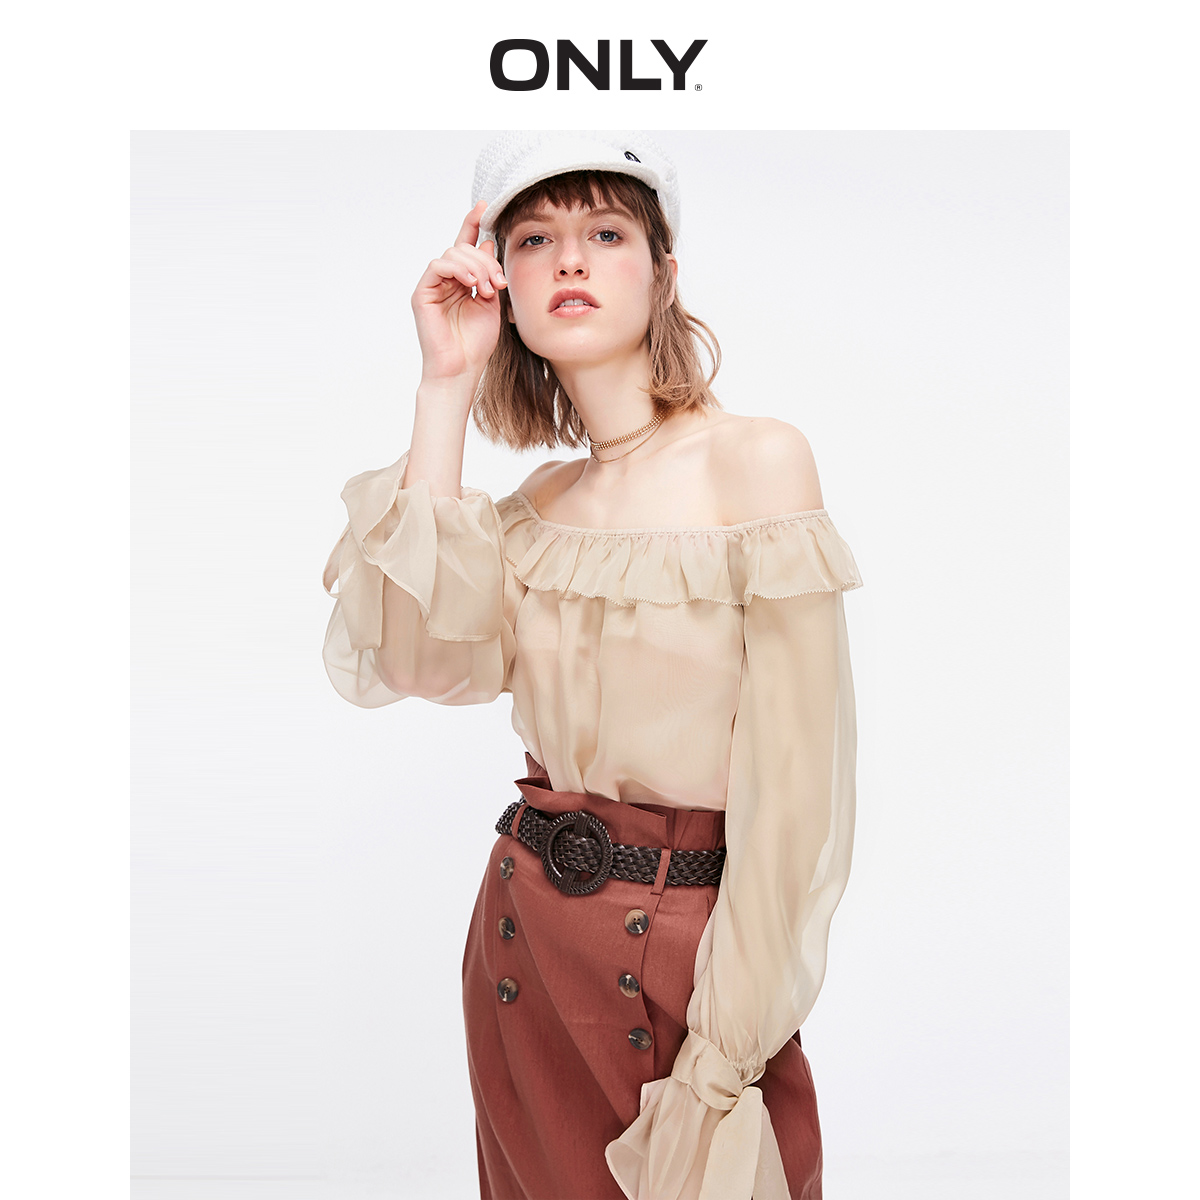 ONLY  Women's Loose Fit Ruffled Off-the-shoulder Chiffon Shirt | 119251503